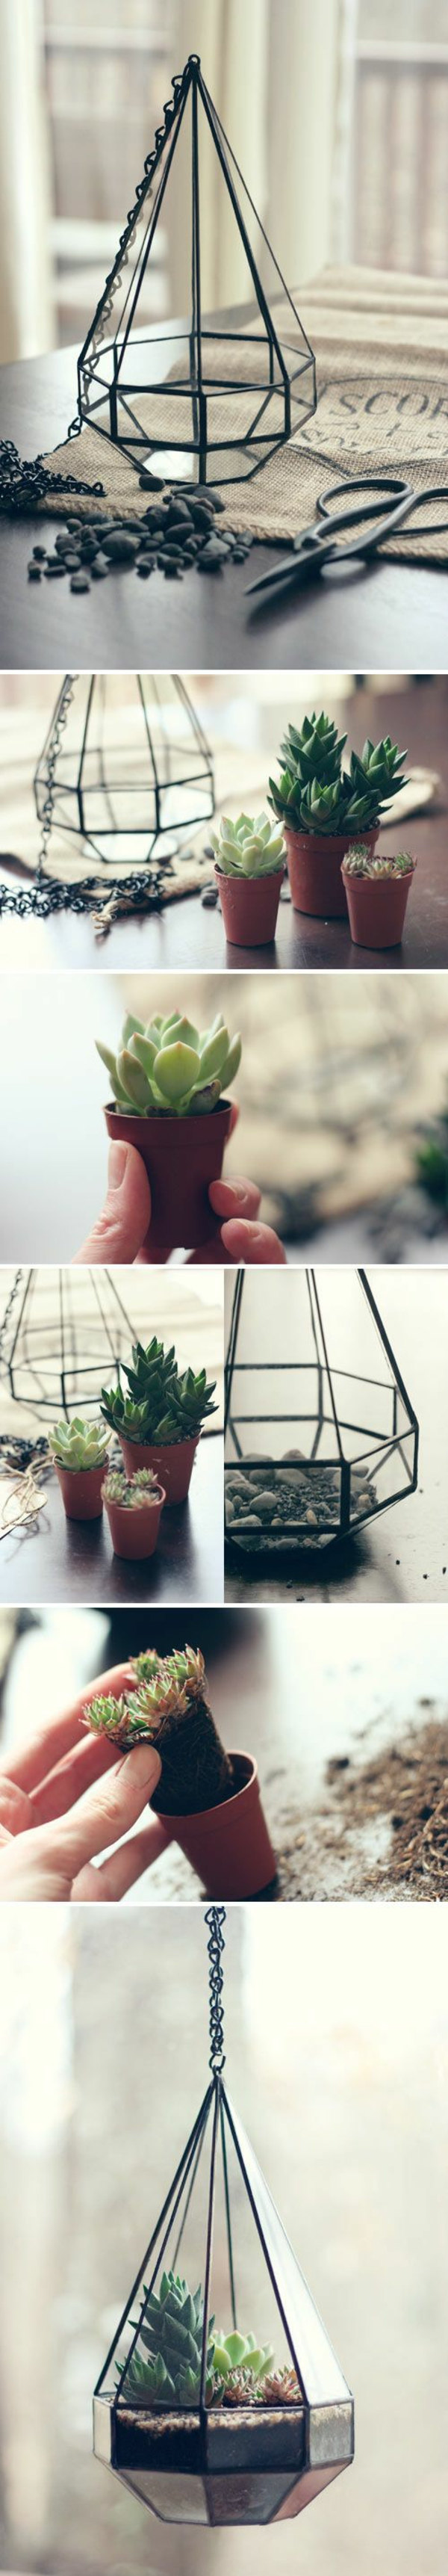 terrarium plants terrarium itself build deco ideas